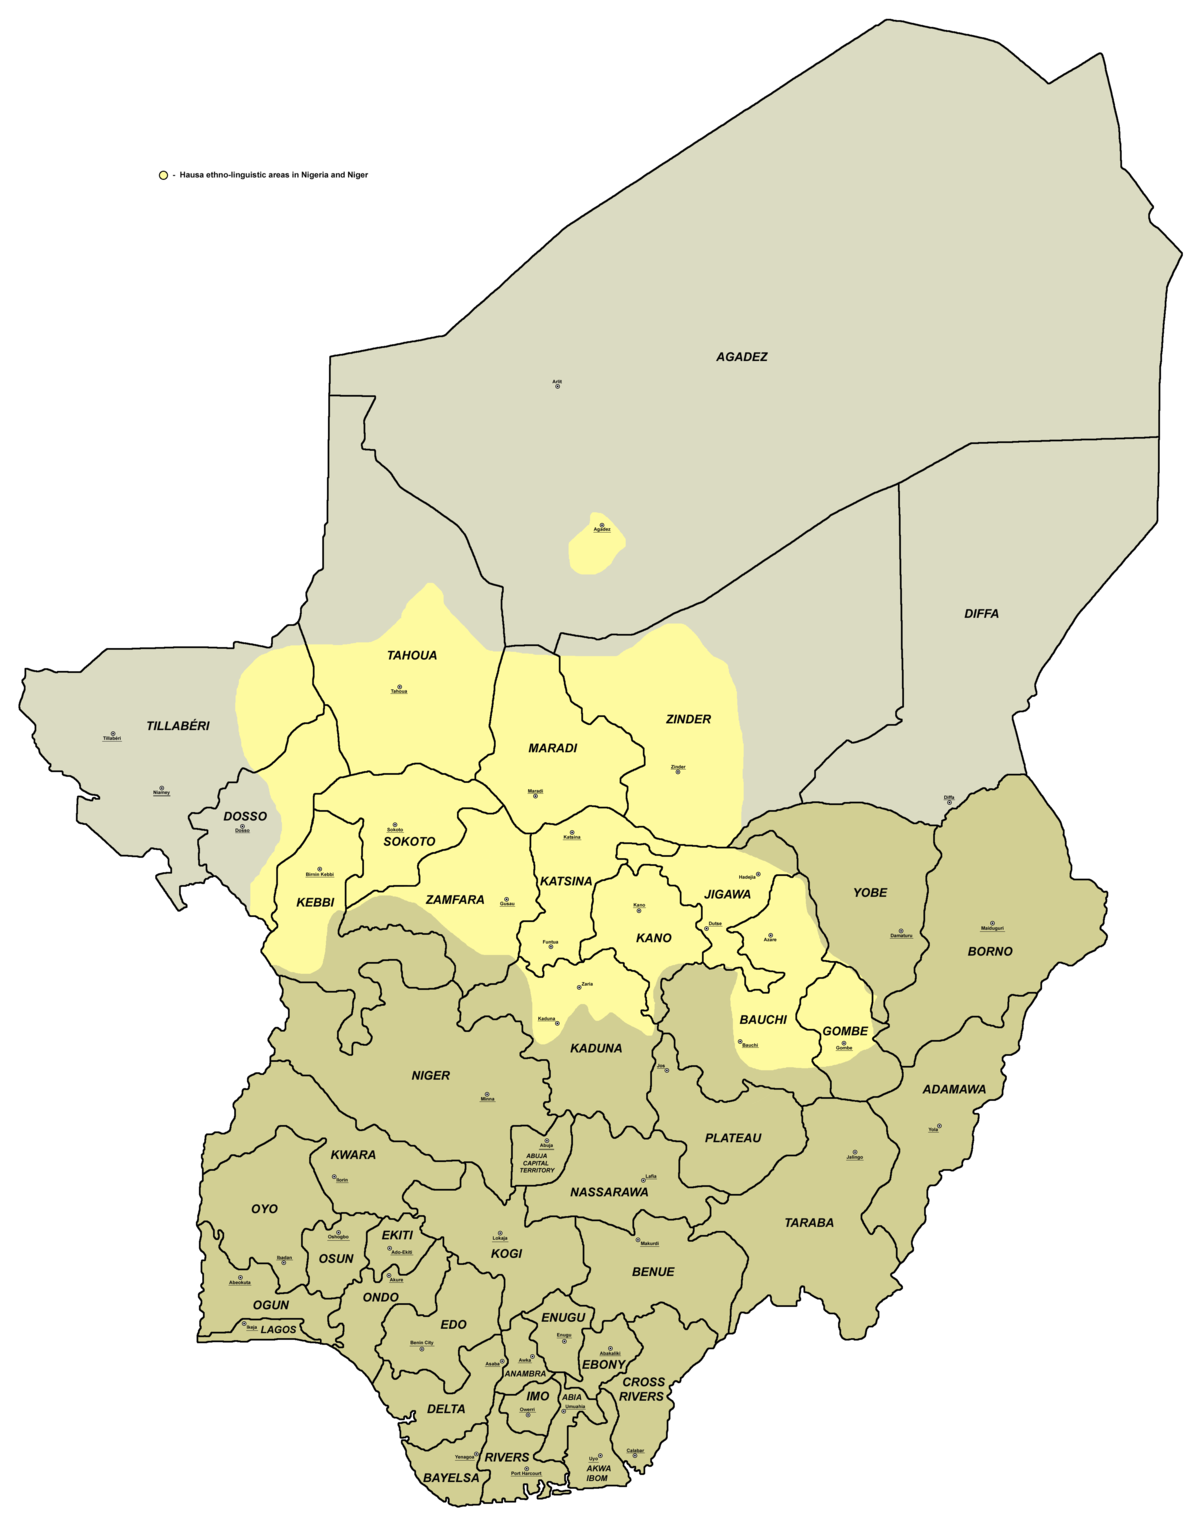 Hausa language - Wikipedia on map of veterans, map of neighborhoods, map of history, map of ethnicities, map of american indian reservations, map of cultures, map of environment, map of housing, map of labor, map of people, map of middle east and russia, map of crime, map of countries, map of laos and thailand, map of terrorist groups, map of irish americans, map of schools, map of extreme groups, map of population growth rate,